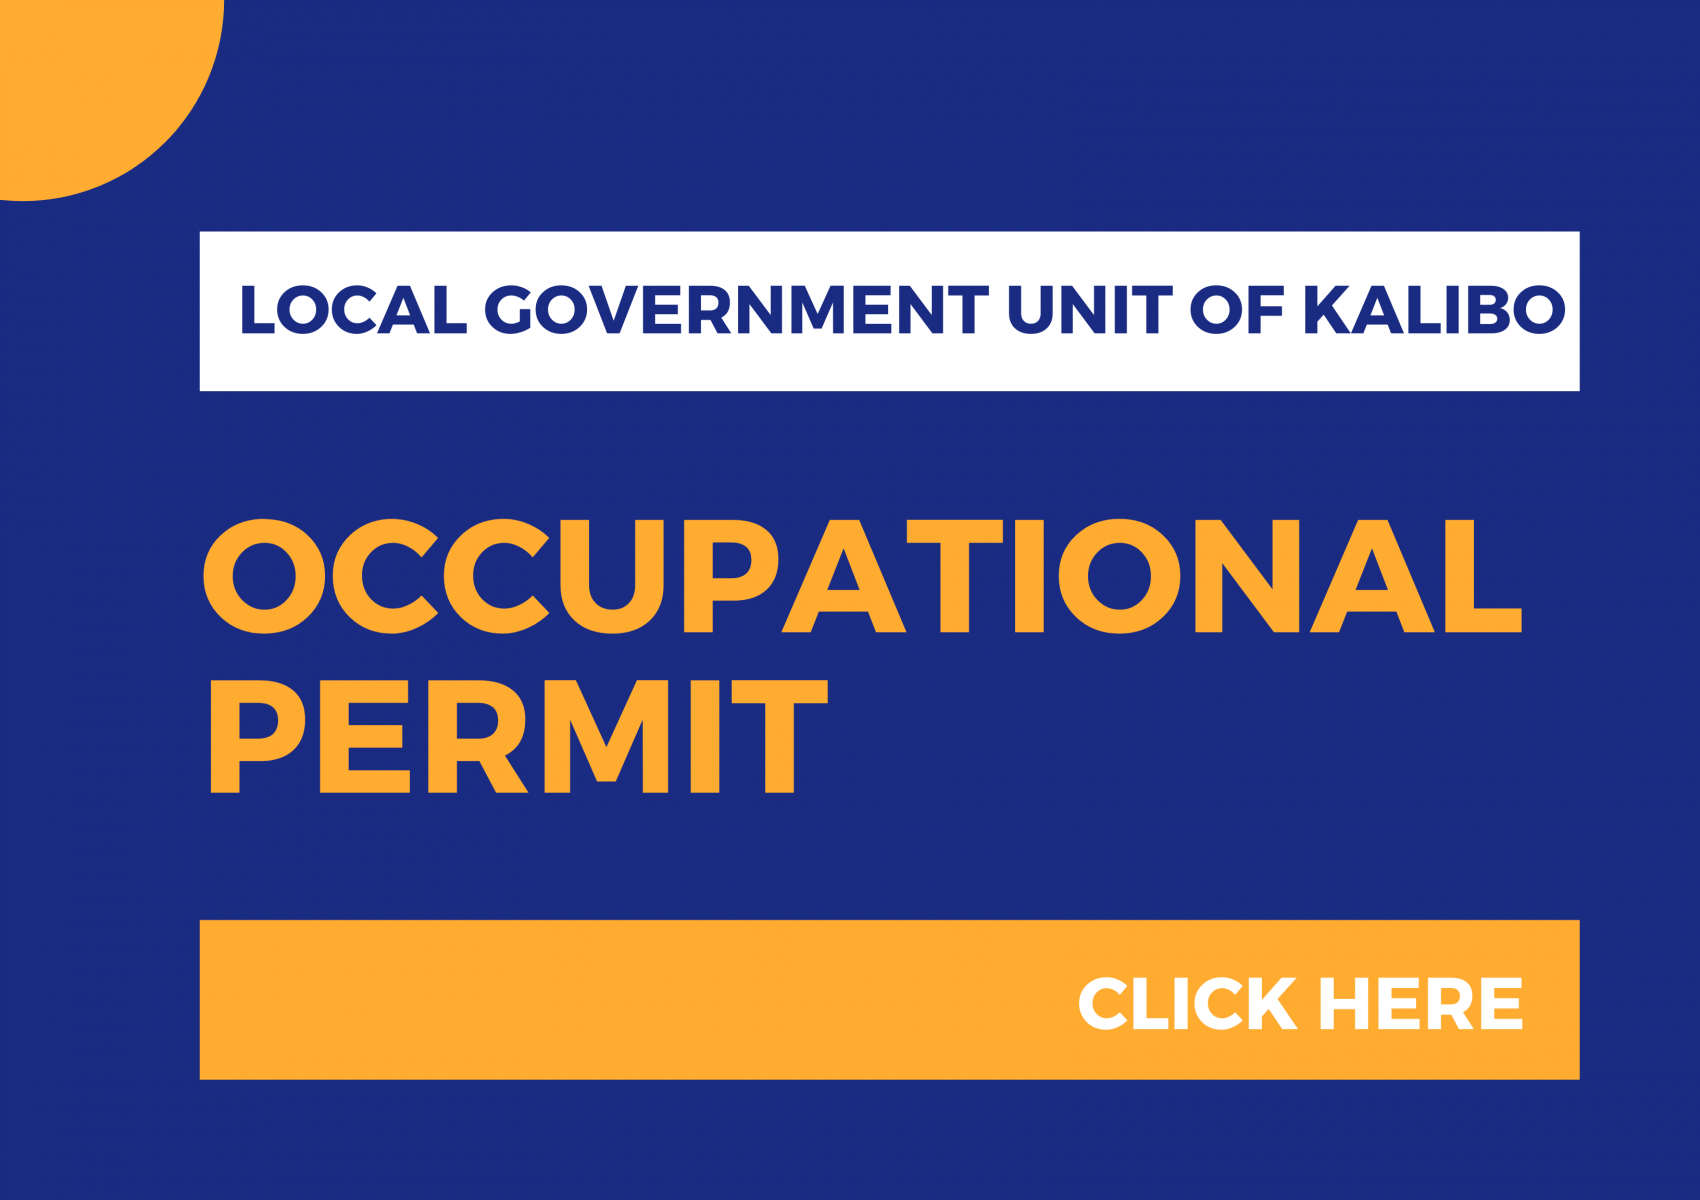 Occupational Permit